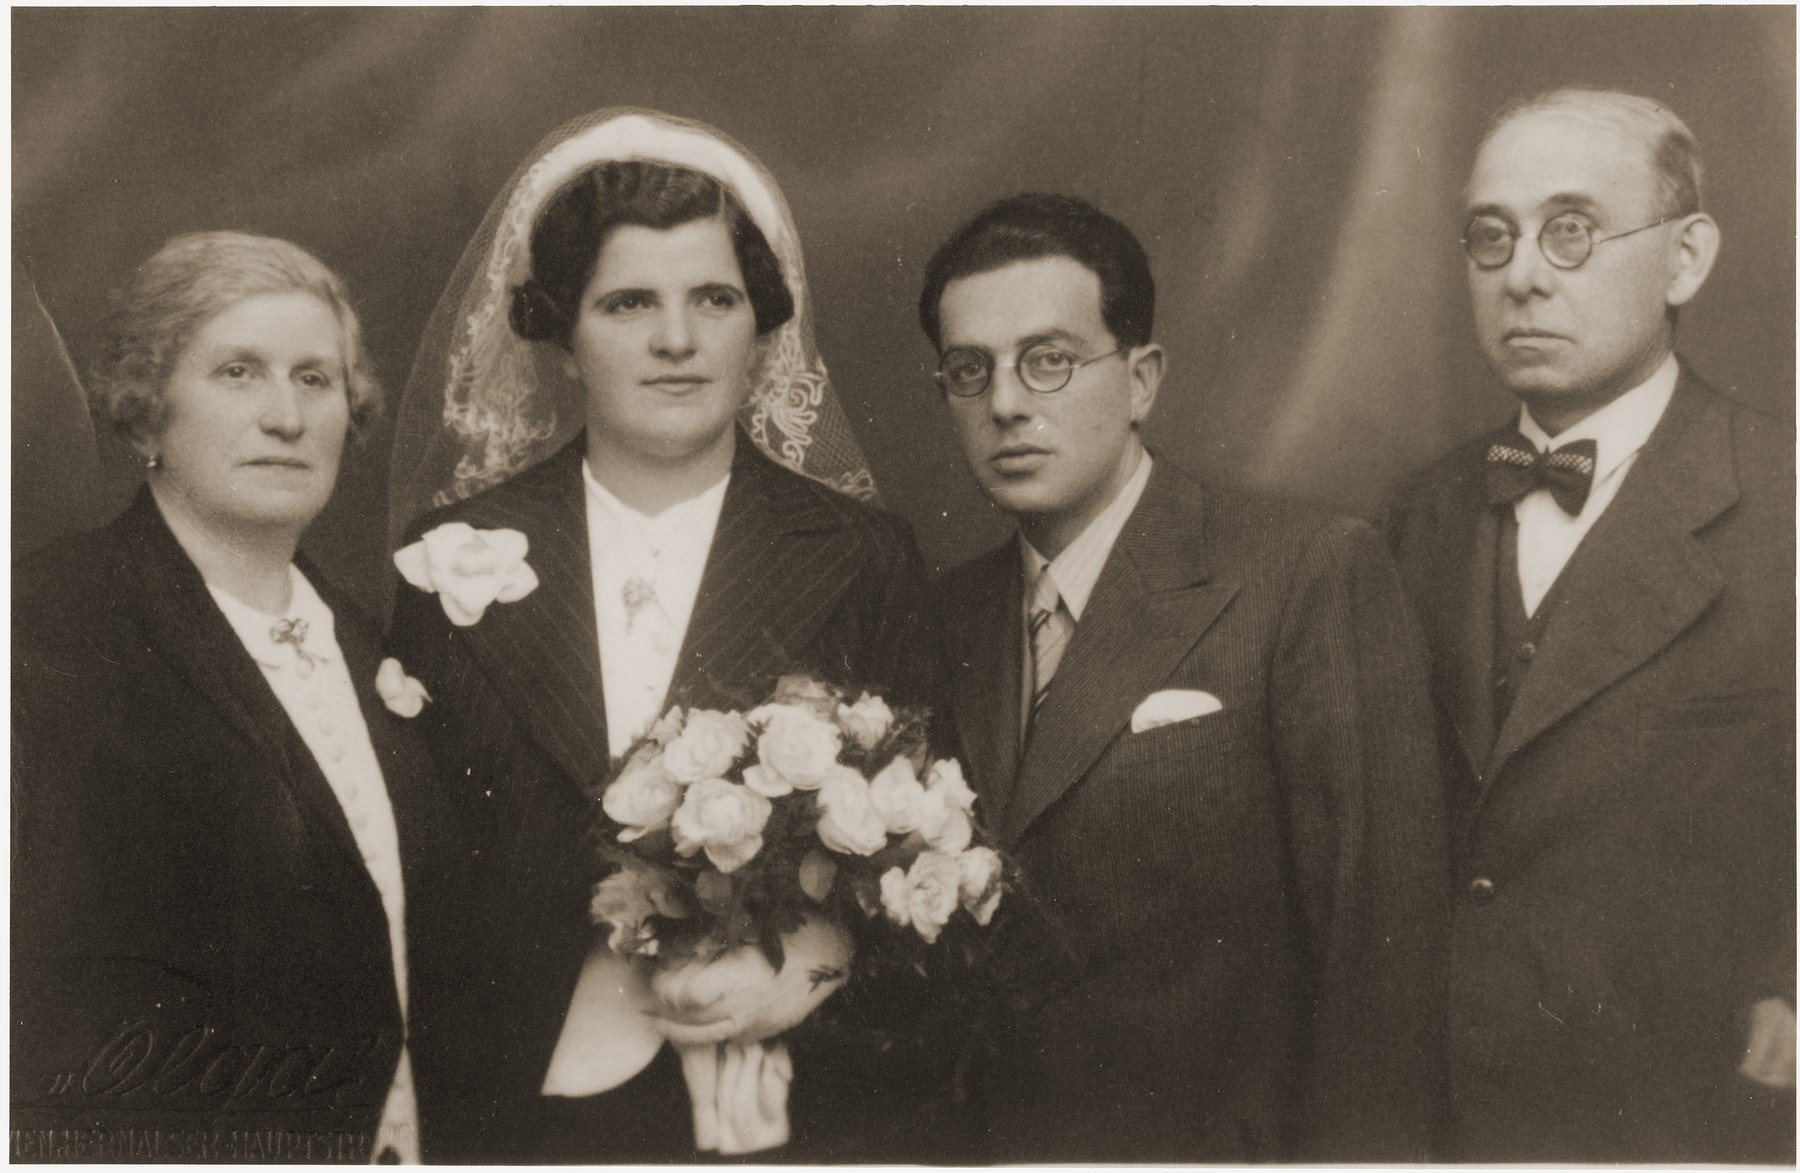 Oskar and Berta (Gottfried) Fiedler pose with their parents at their wedding in Vienna.